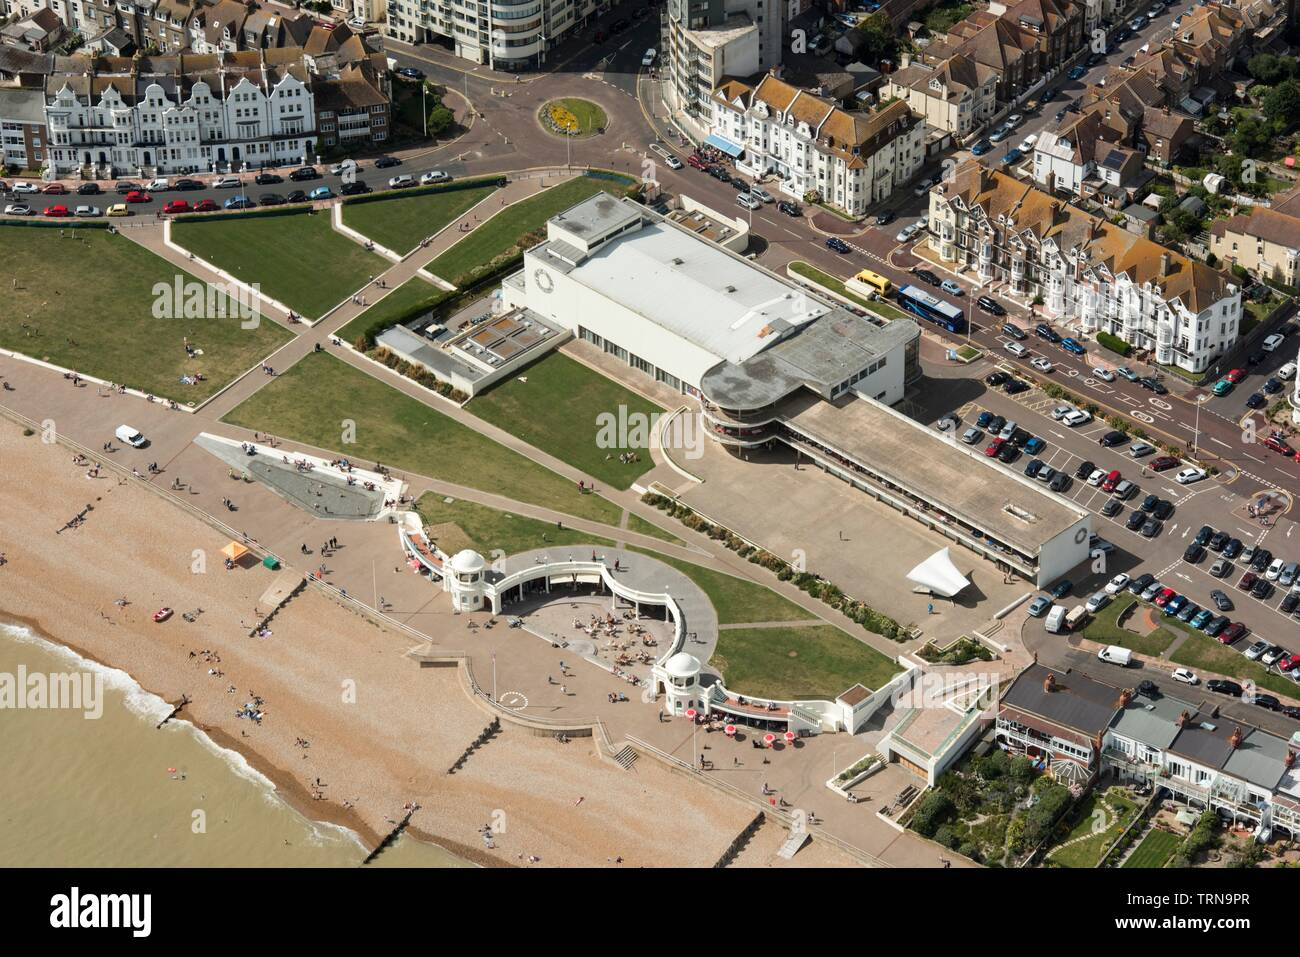 King George V Colonnade and De La Warr Pavilion, Bexhill, East Sussex, 2016. The Art Deco Pavilion was designed by Erich Mendelsohn and Serge Chermayeff as the result of an architectural competition organised by Herbrand Sackville, 9th Earl De La Warr. - Stock Image